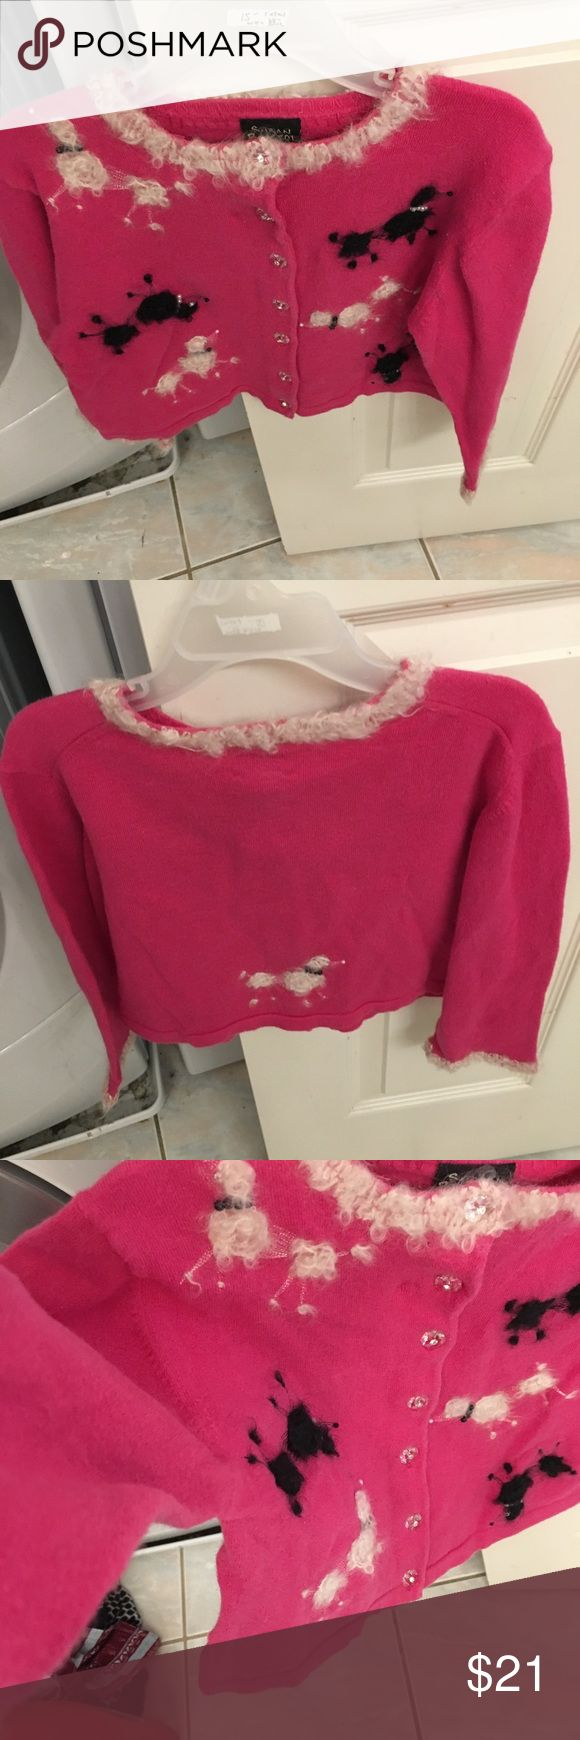 Girl's pink button-up sweater (SZ 4) In FANTASTIC CONDITION!!!!!!  Worn once. Clear buttons running the length of the sweater, along with Pom-pom dog details are nice, personal touches.  😊 Willing to negotiate, so do NOT hesitate to make an offer!!!!!! 🛍💰💥✨  🚫Trades ✨ 100% Authentic 💵 Offers Welcome 💰 Bundle Discount 📬 Ships in 1-2 days (**Put in a bundle, and I'll make you a lower PRIVATE offer** 🙃) Susan Bristol Shirts & Tops Sweaters